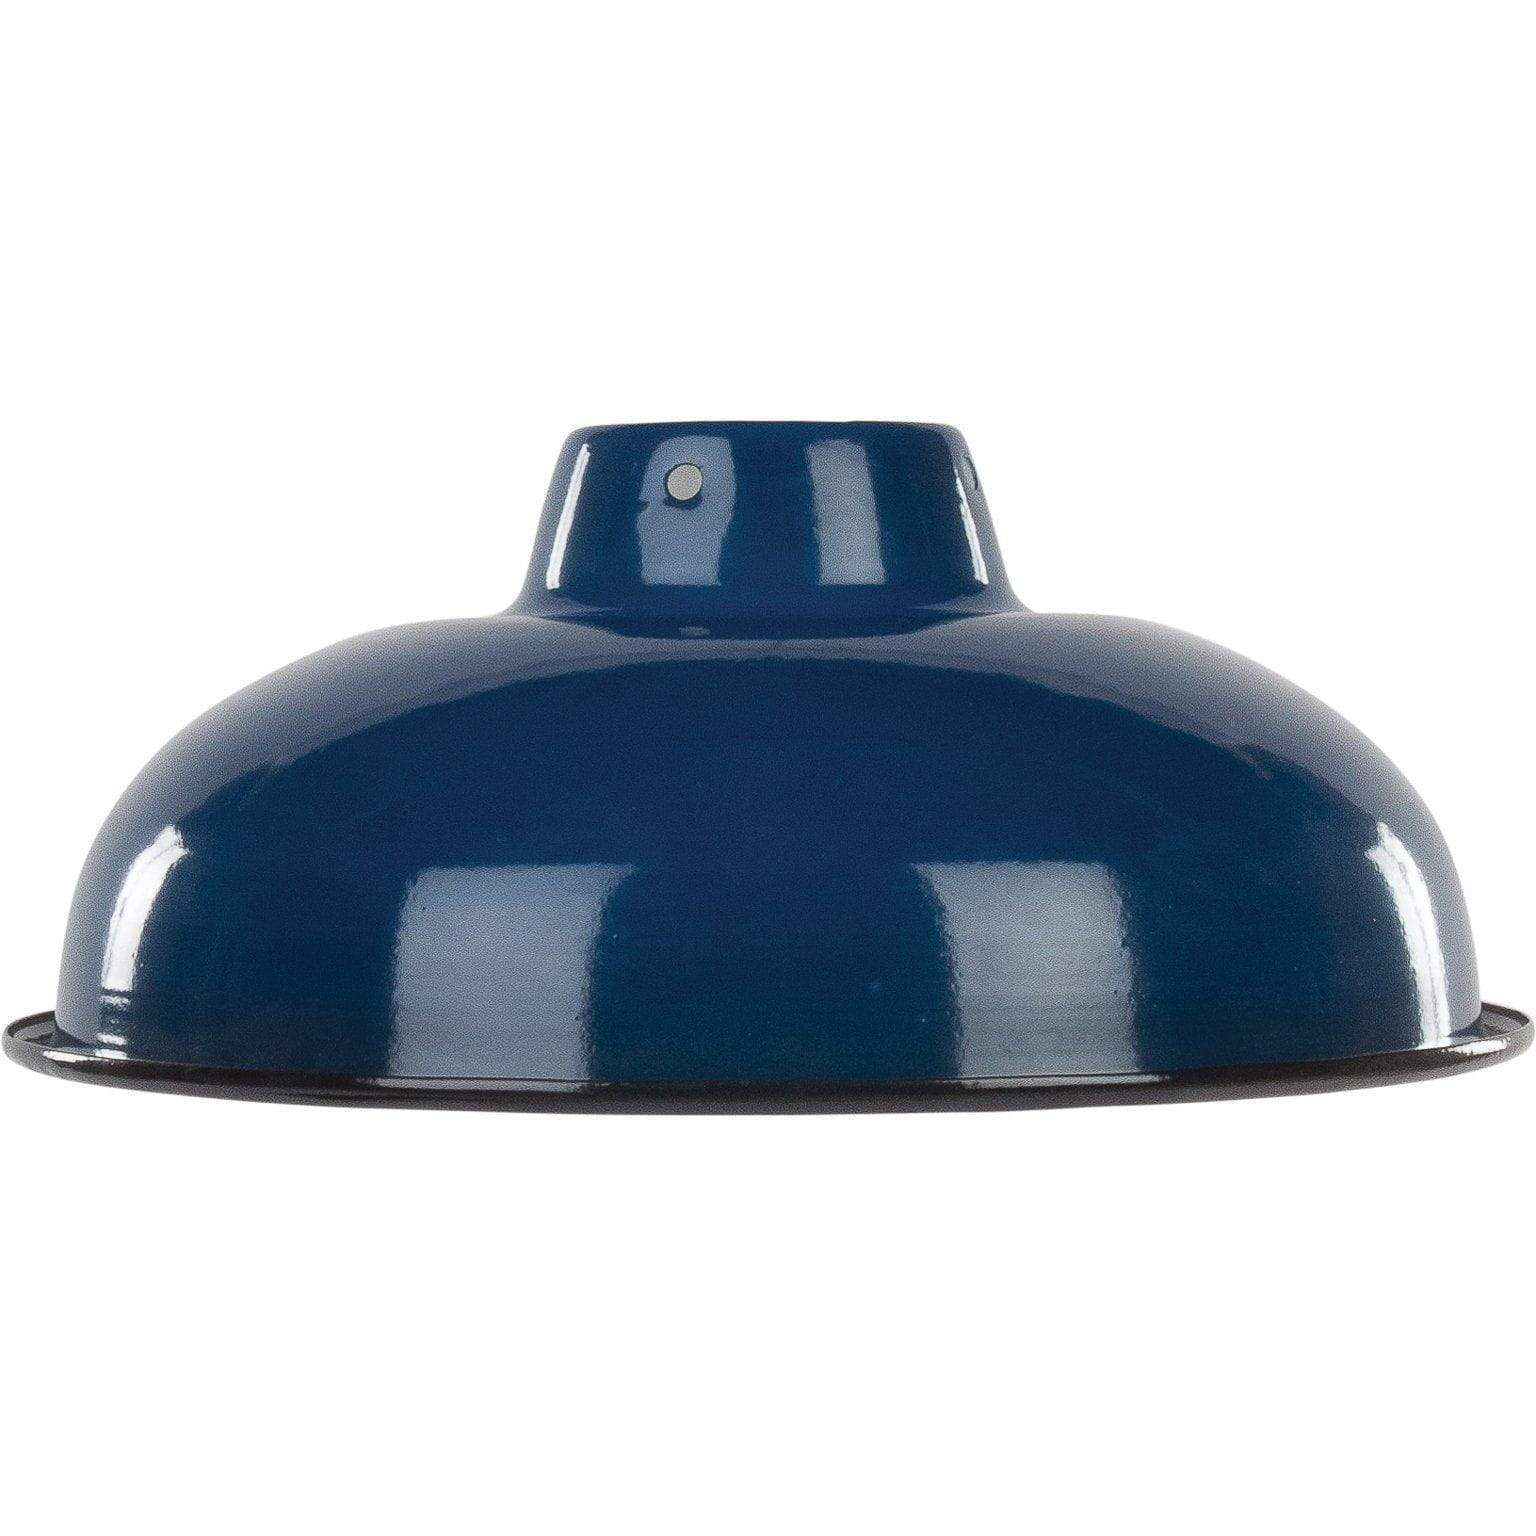 Ian Snow Ltd Royal Blue Medium Enamel Lampshade